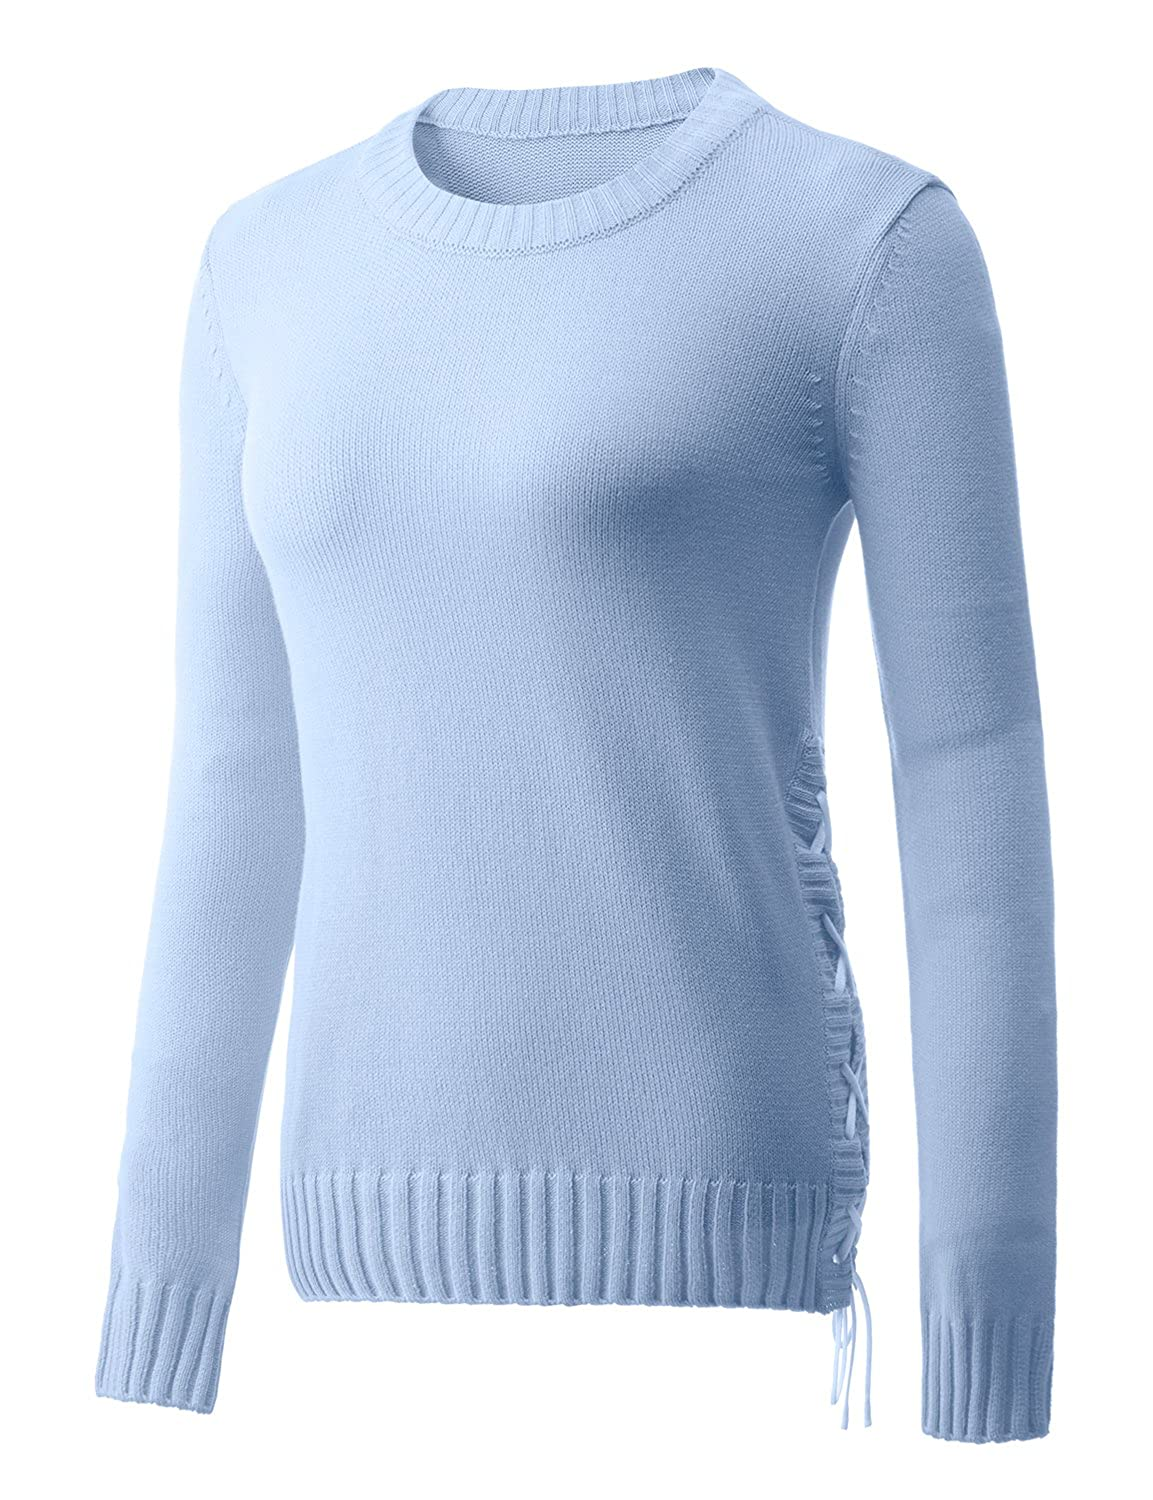 REGNA X Basic women's crew neck rope knit sweater